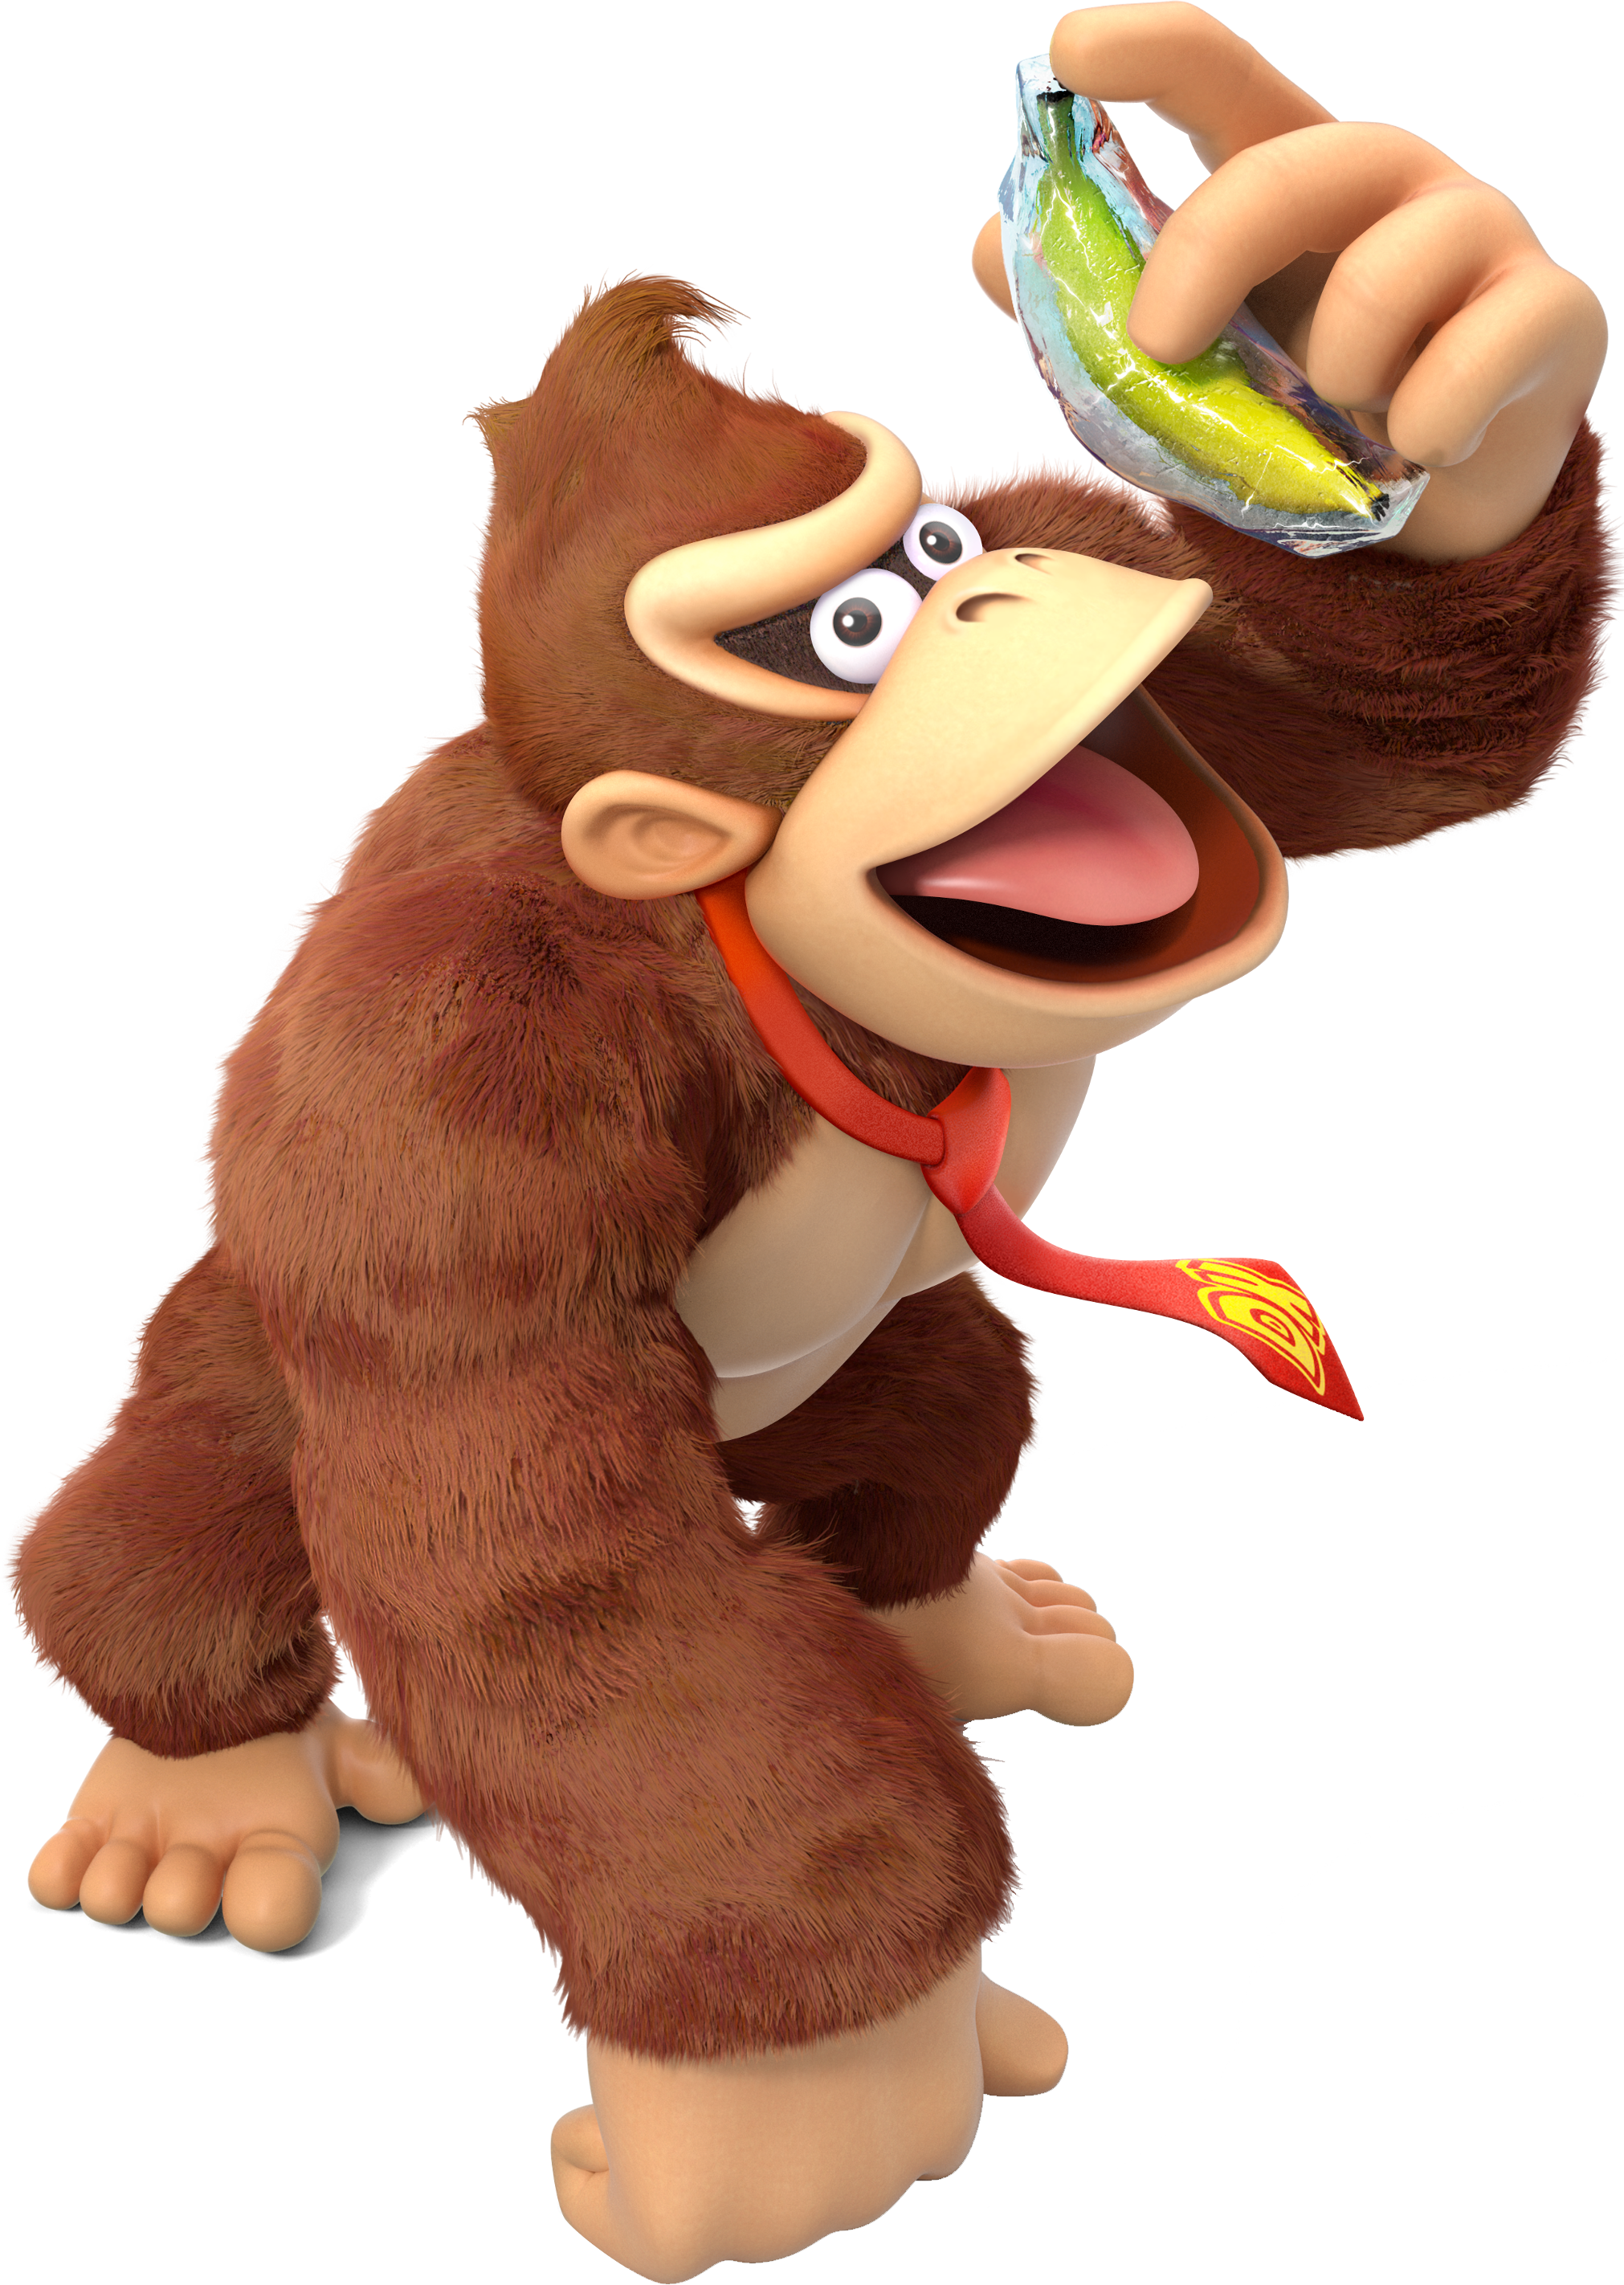 Donkey Kong Smashpedia The Super Smash Bros Wiki